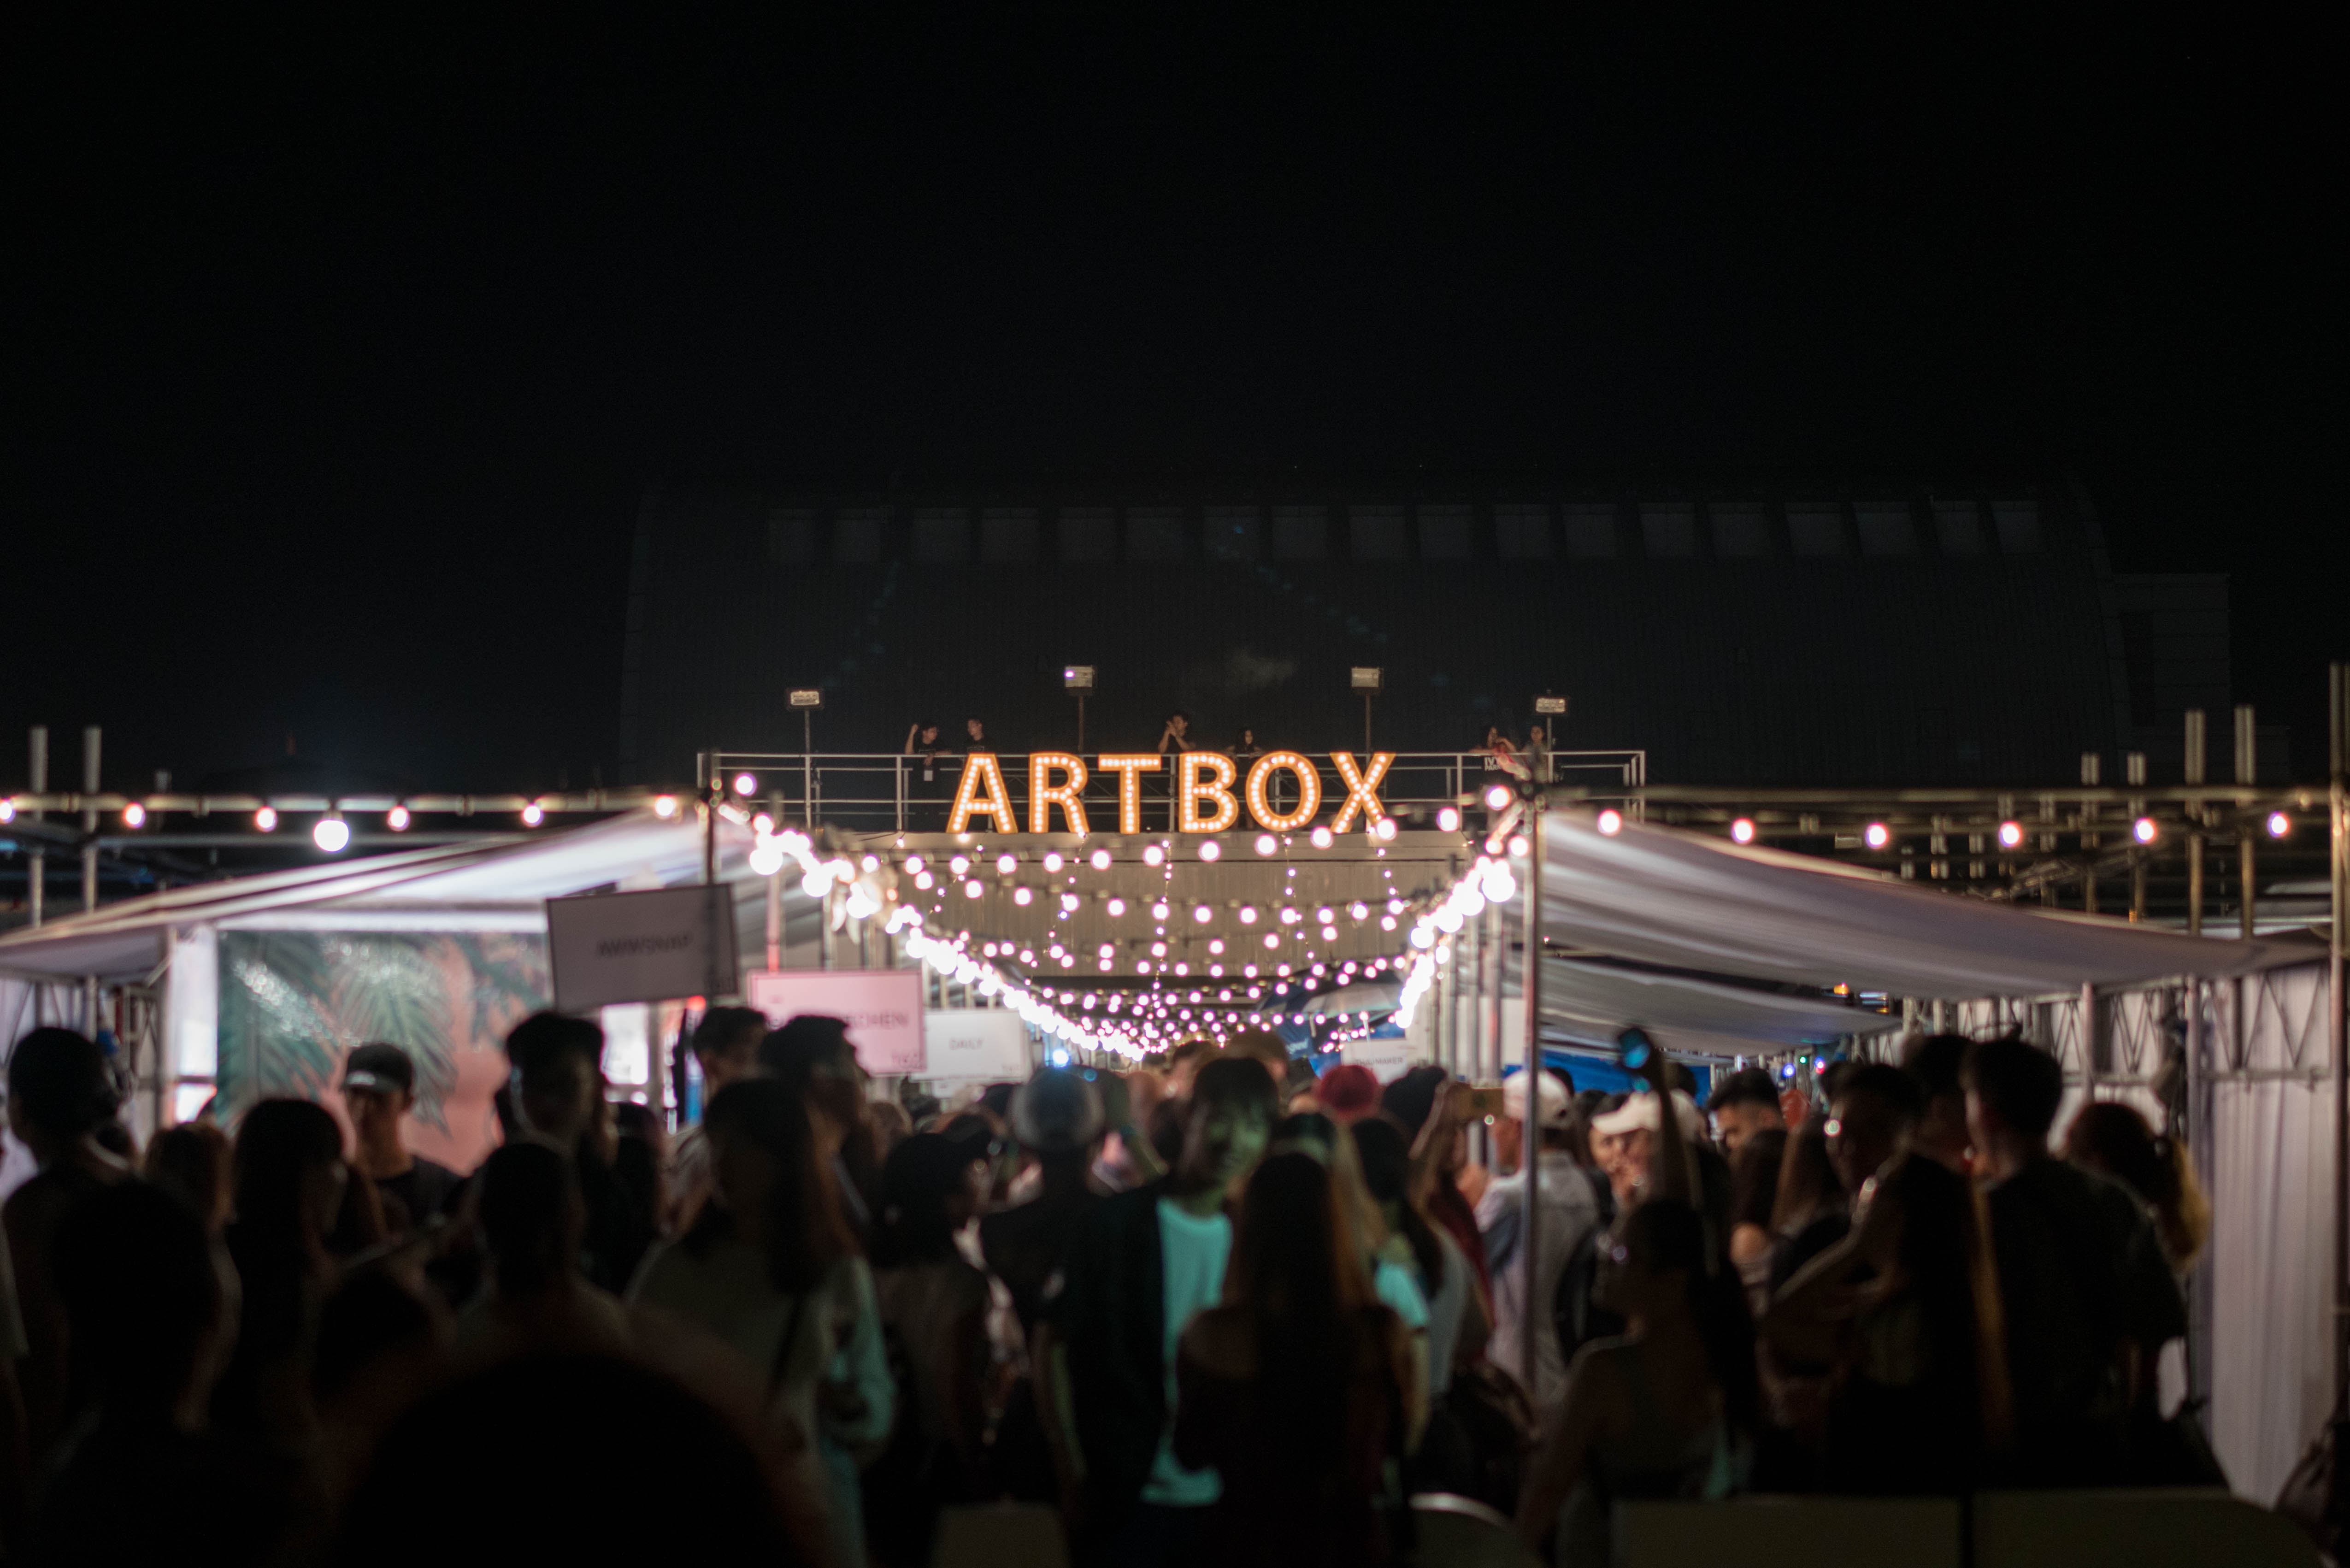 Image from Artbox Malaysia